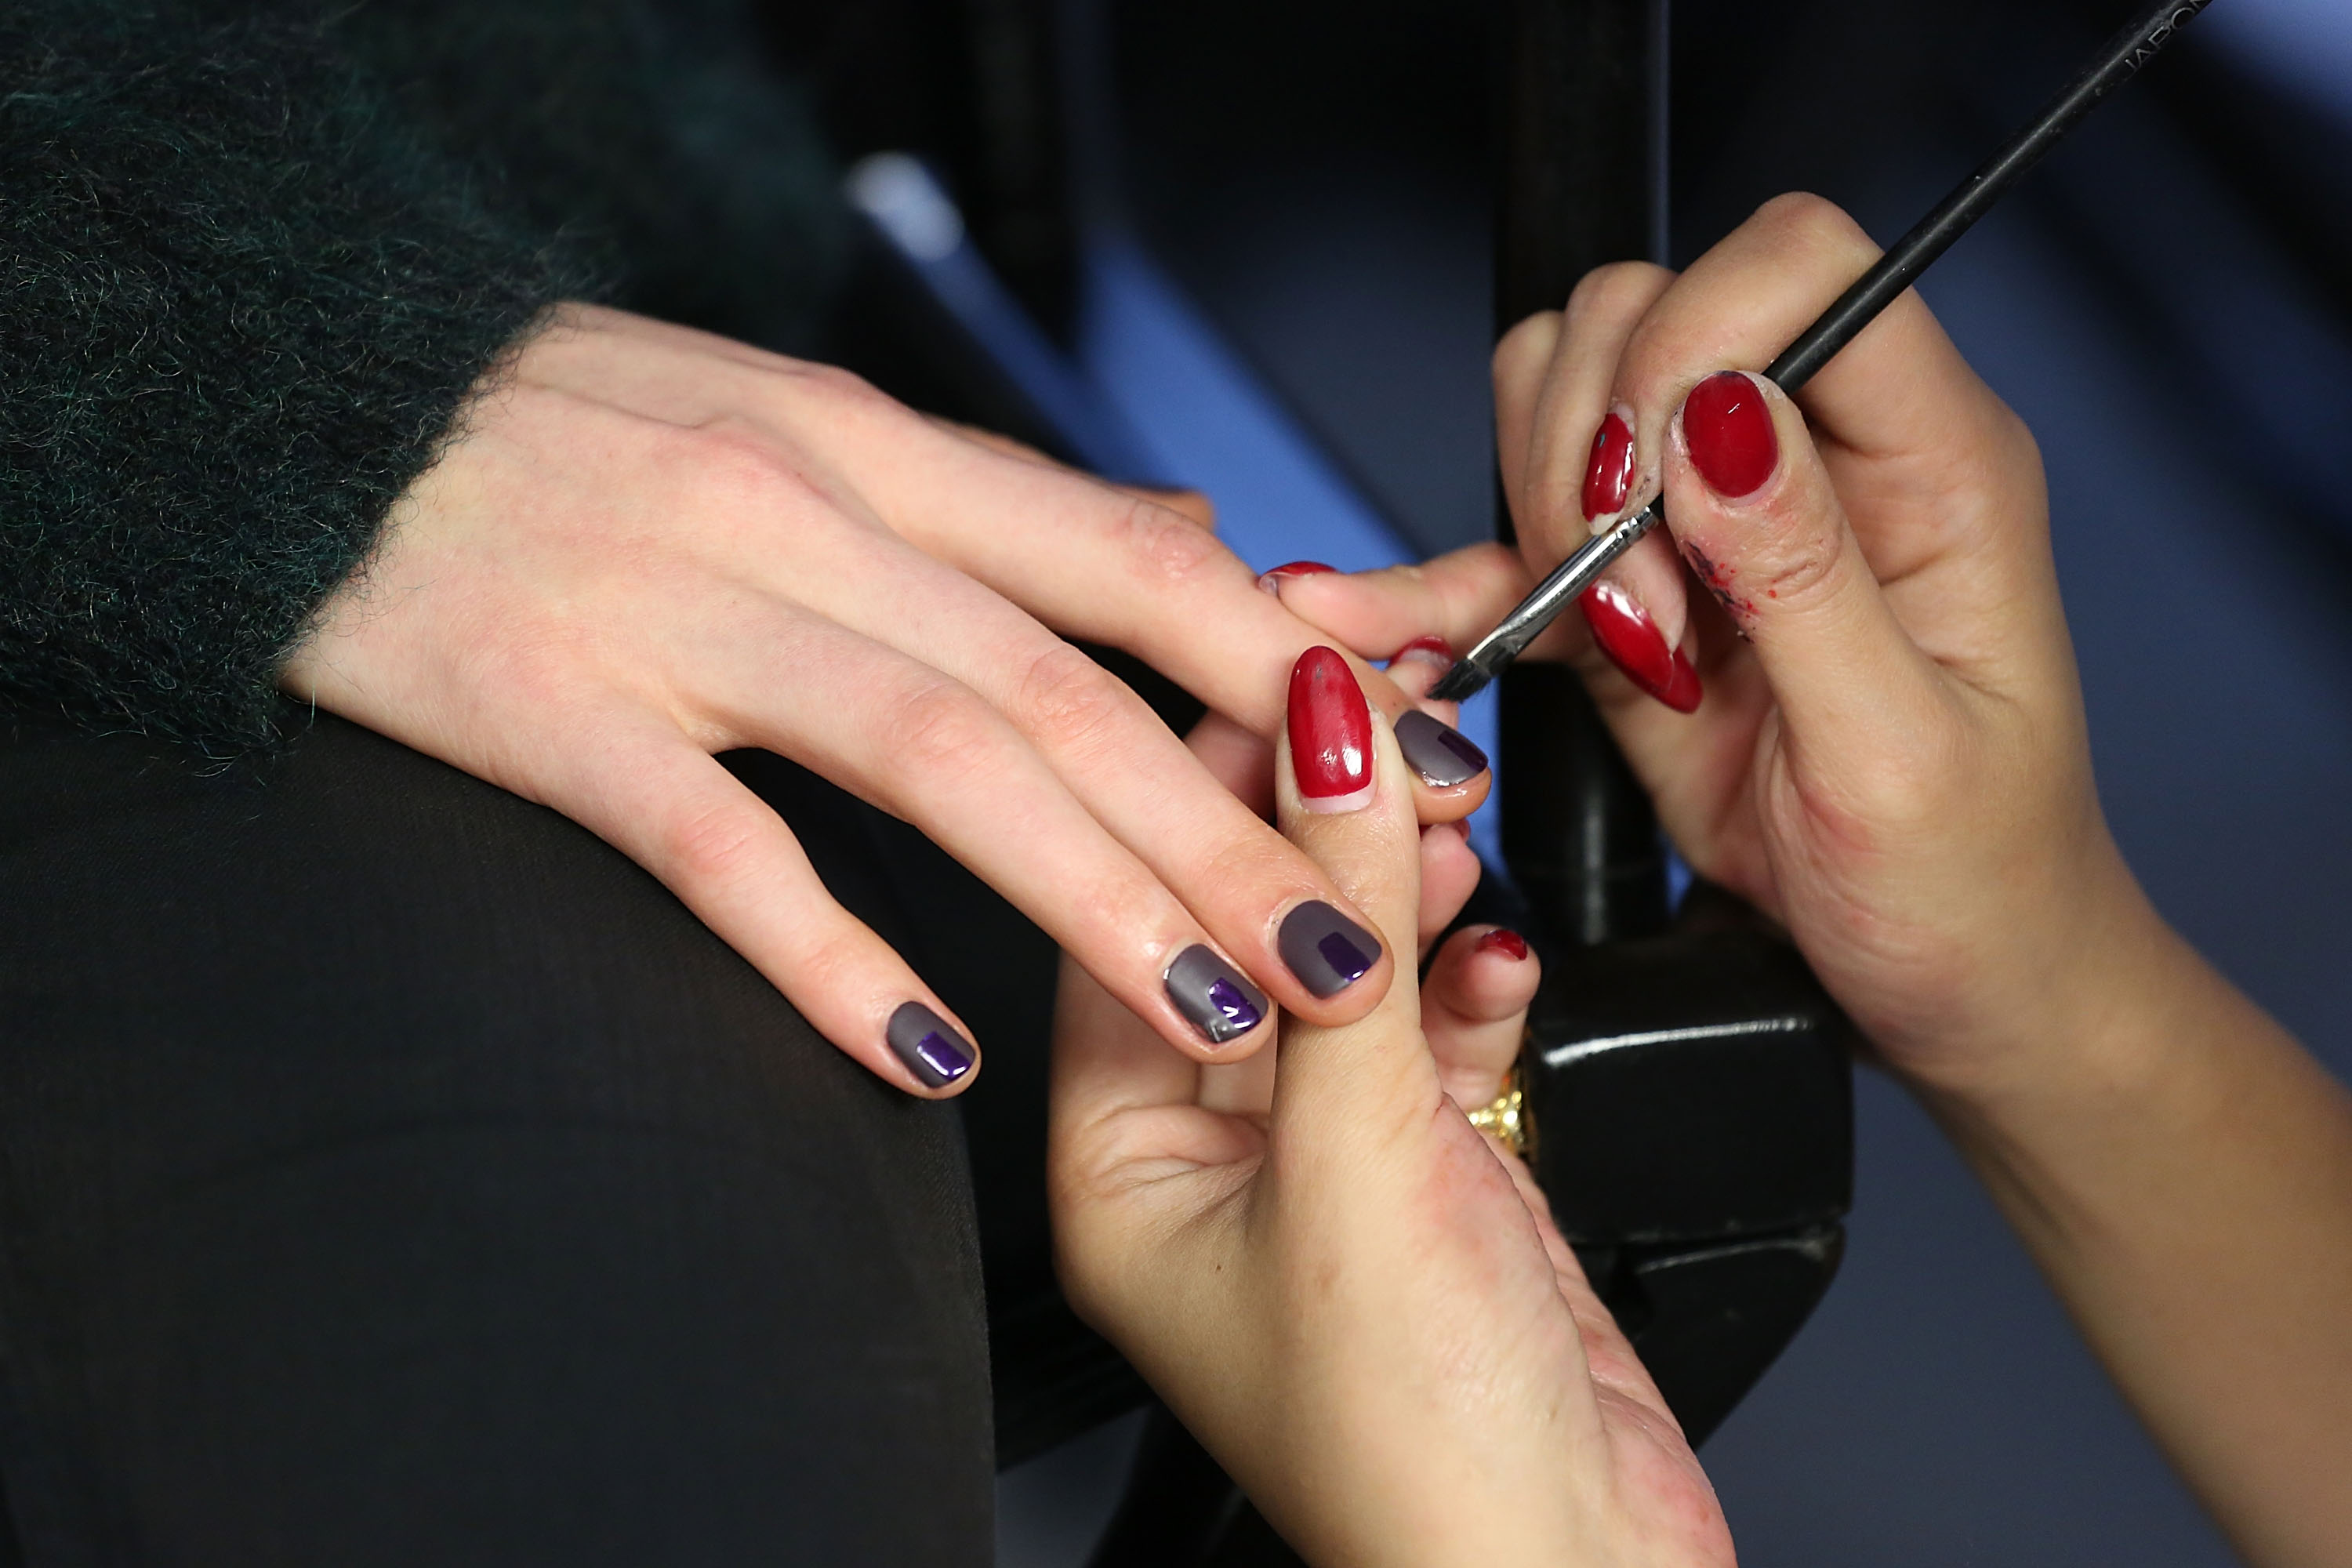 13 Things You Should Never Do To Your Nails If Want Those Talons In Tip Top Shape